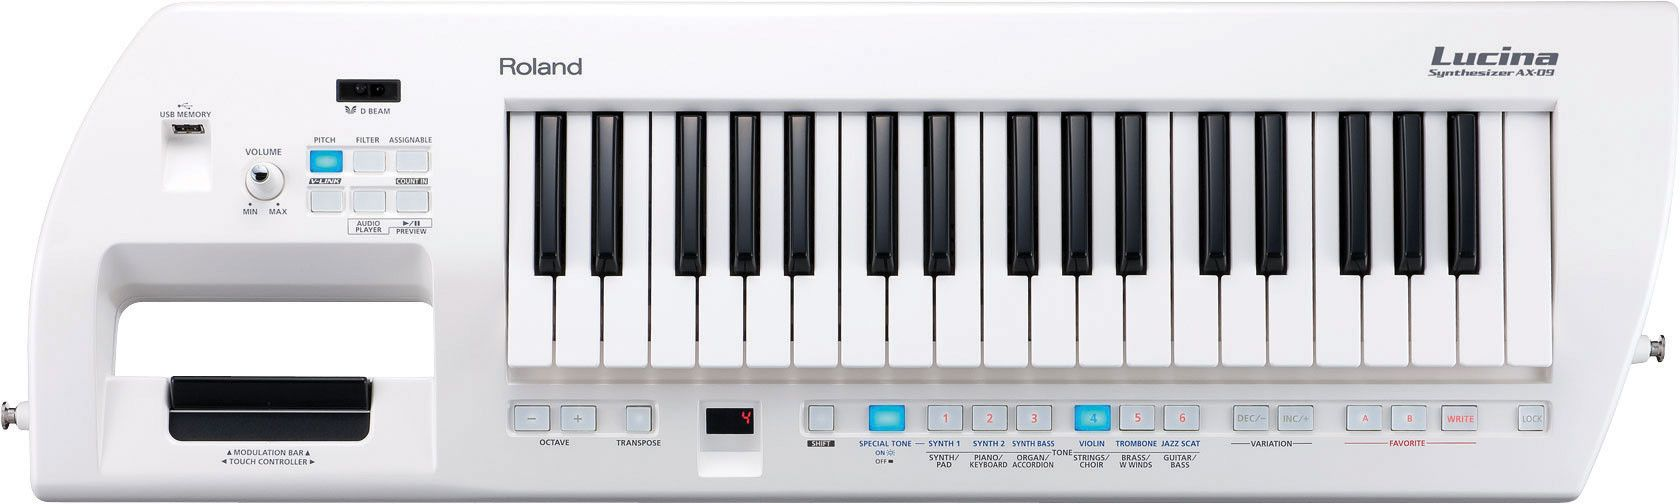 roland lucina ax 09 37 key keytar synthesizer pearl white keyboards roland synthesizer. Black Bedroom Furniture Sets. Home Design Ideas